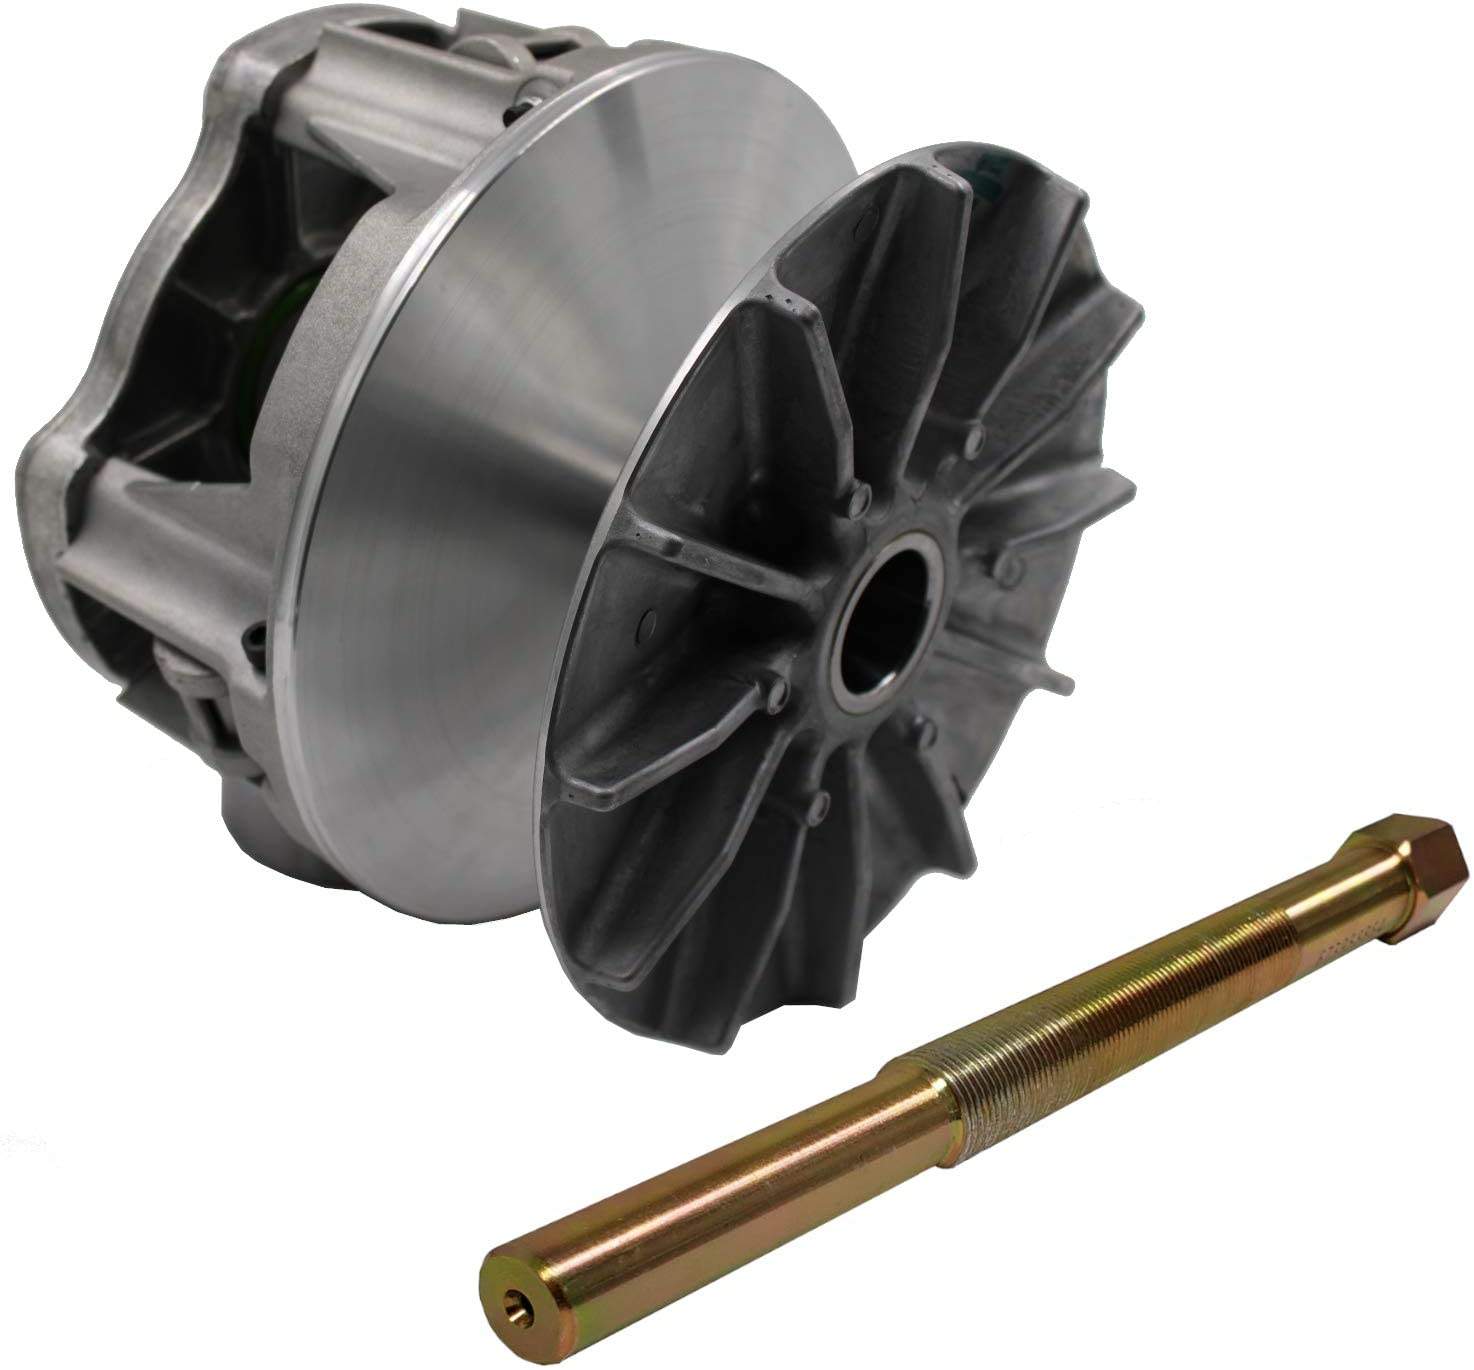 East Lake Axle Primary drive clutch and puller compatible with Polaris Ranger/Sportsman 800 2010 2011 2012 2013 2014 2015 2016 1322920 1322996